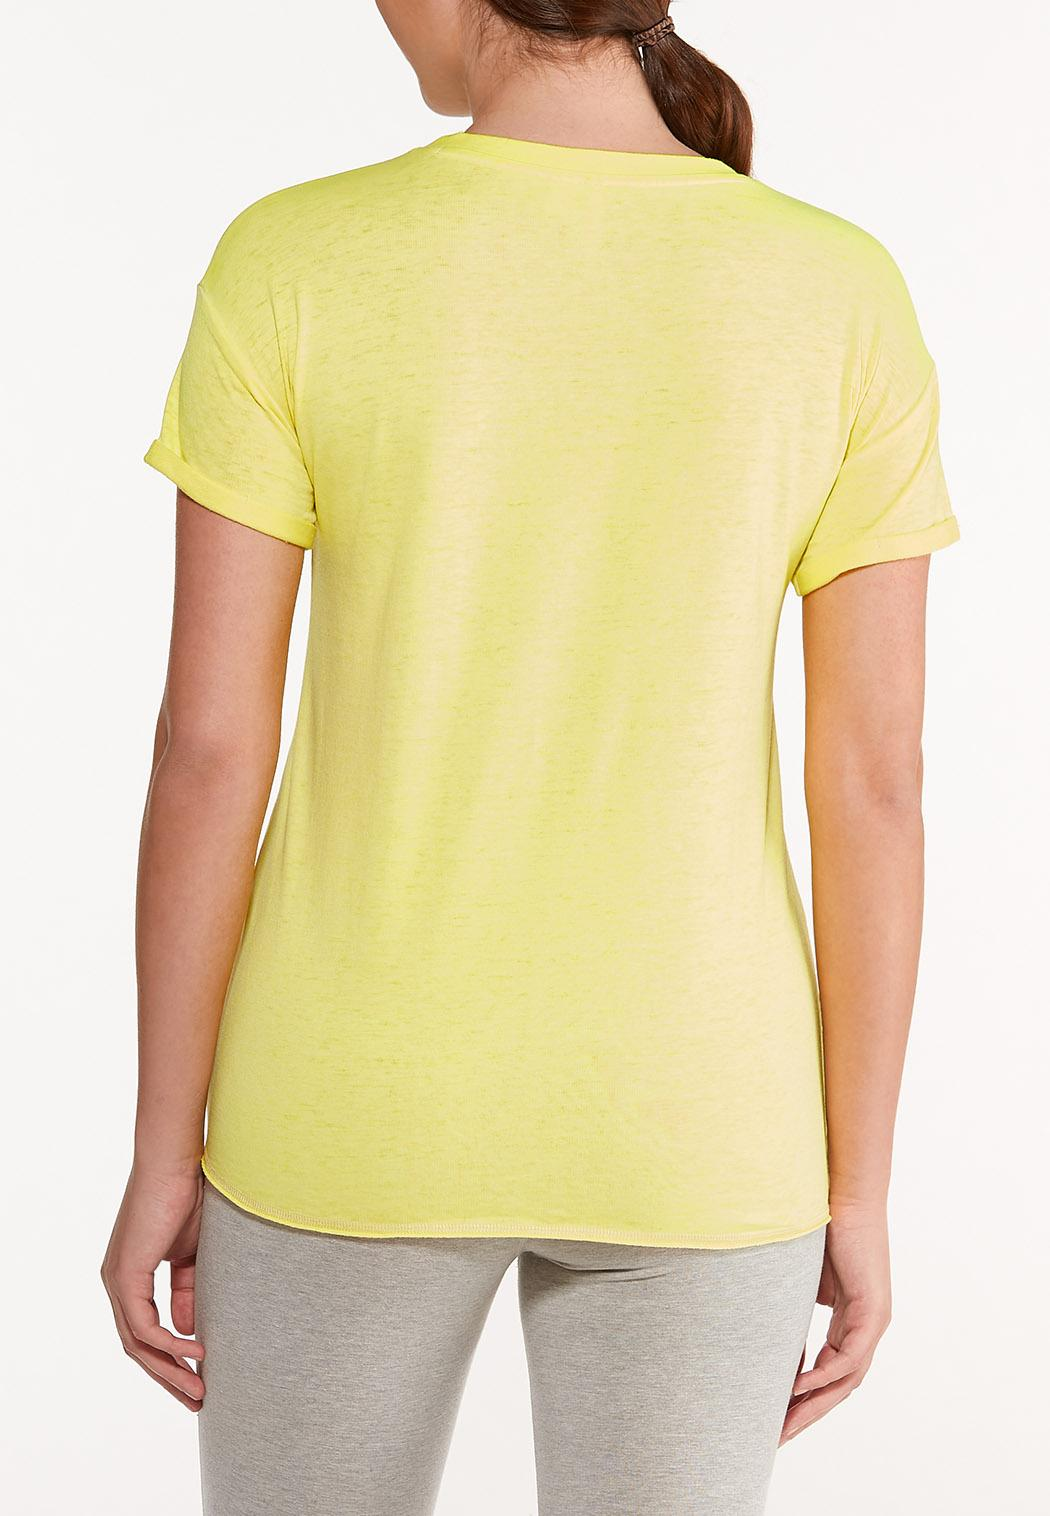 Plus Size Empowered Knotted Tee (Item #44549258)